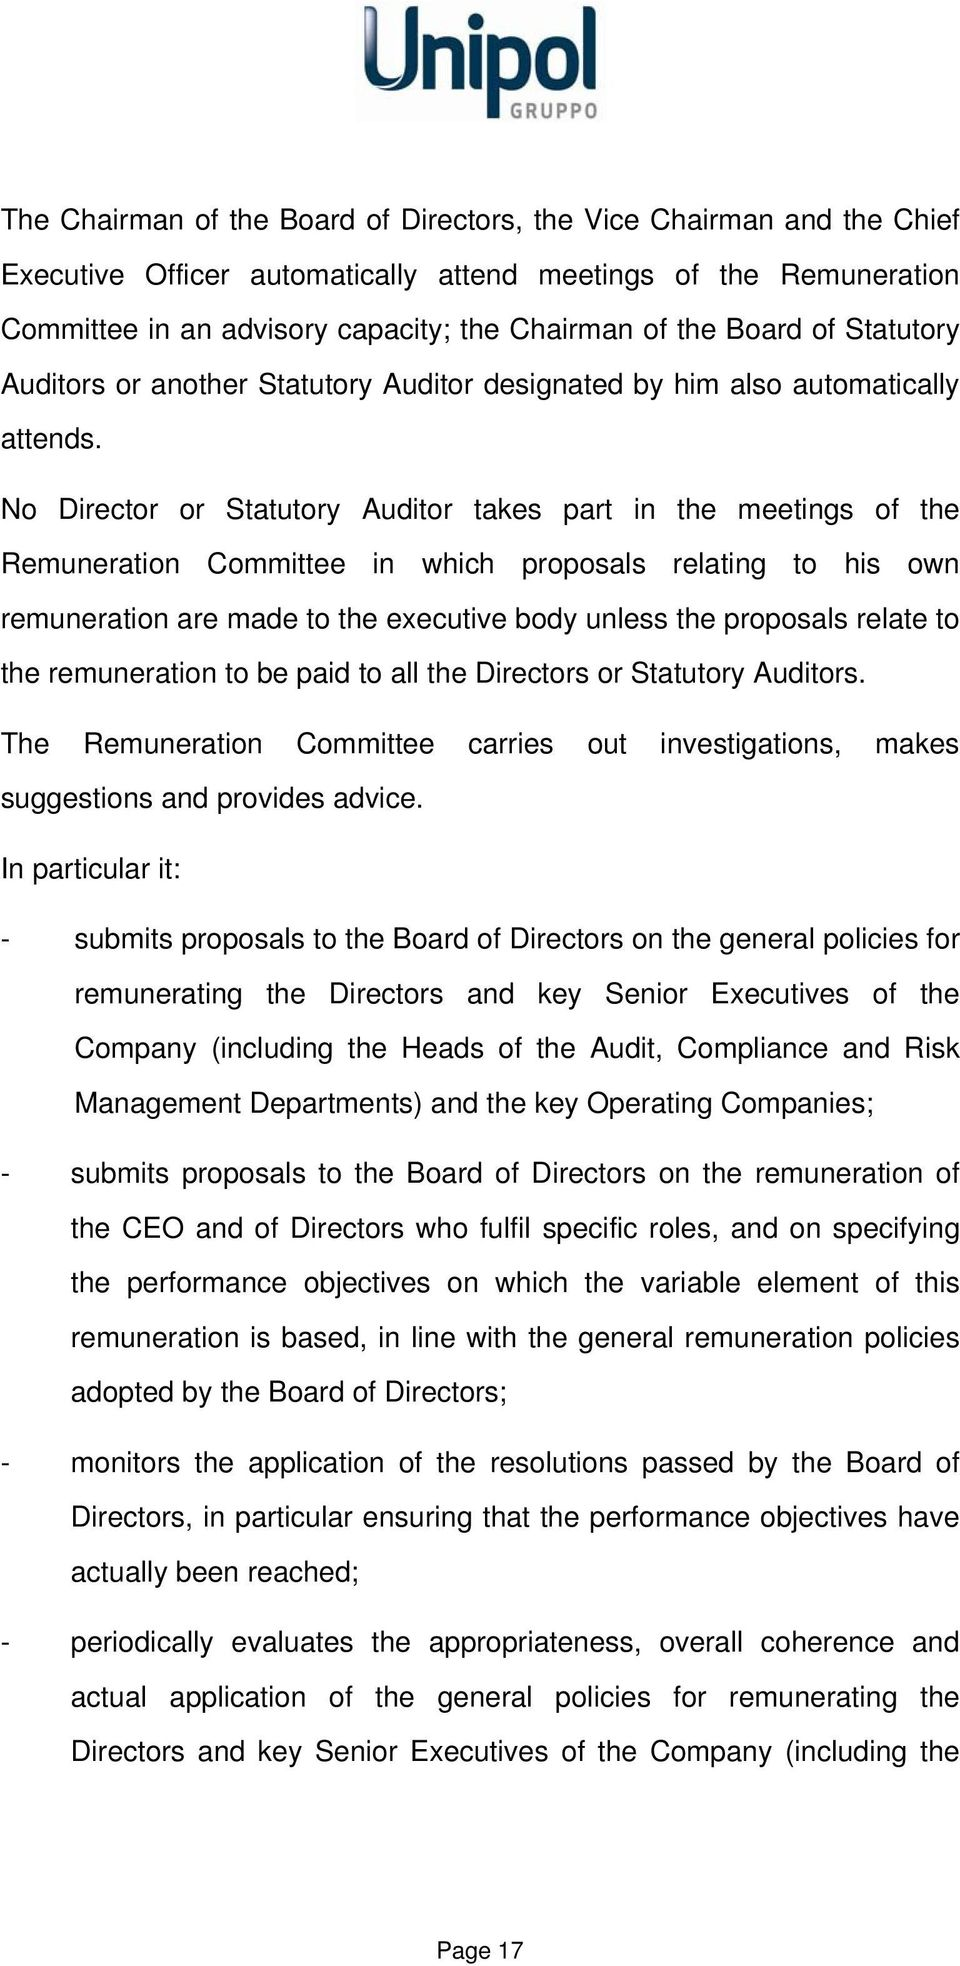 No Director or Statutory Auditor takes part in the meetings of the Remuneration Committee in which proposals relating to his own remuneration are made to the executive body unless the proposals